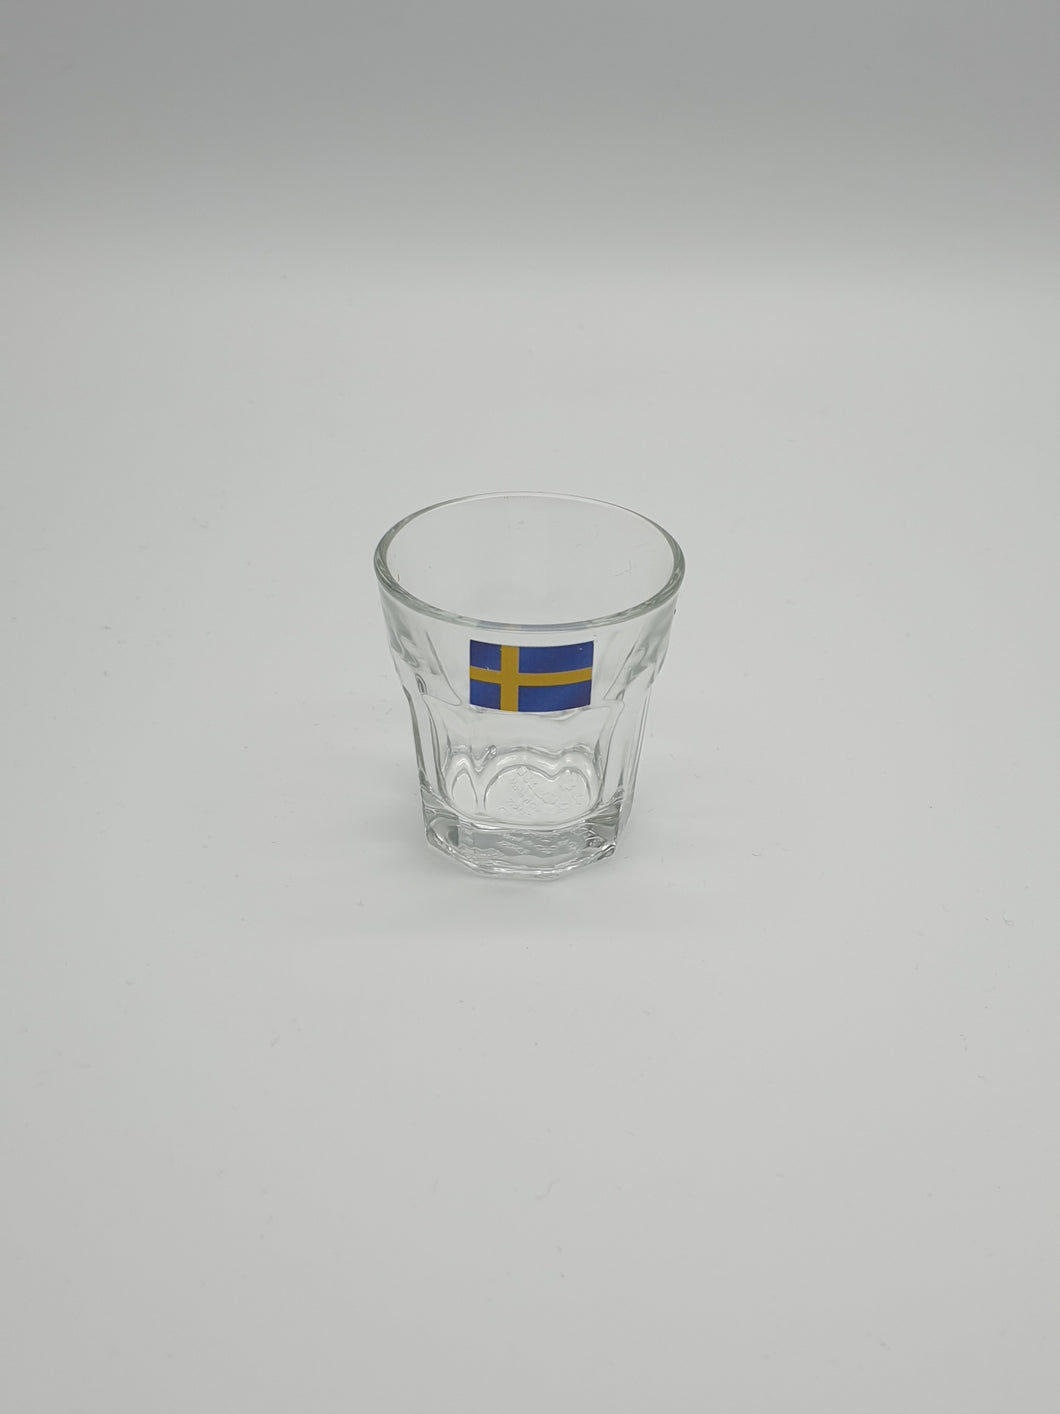 Glass Svenska flaga